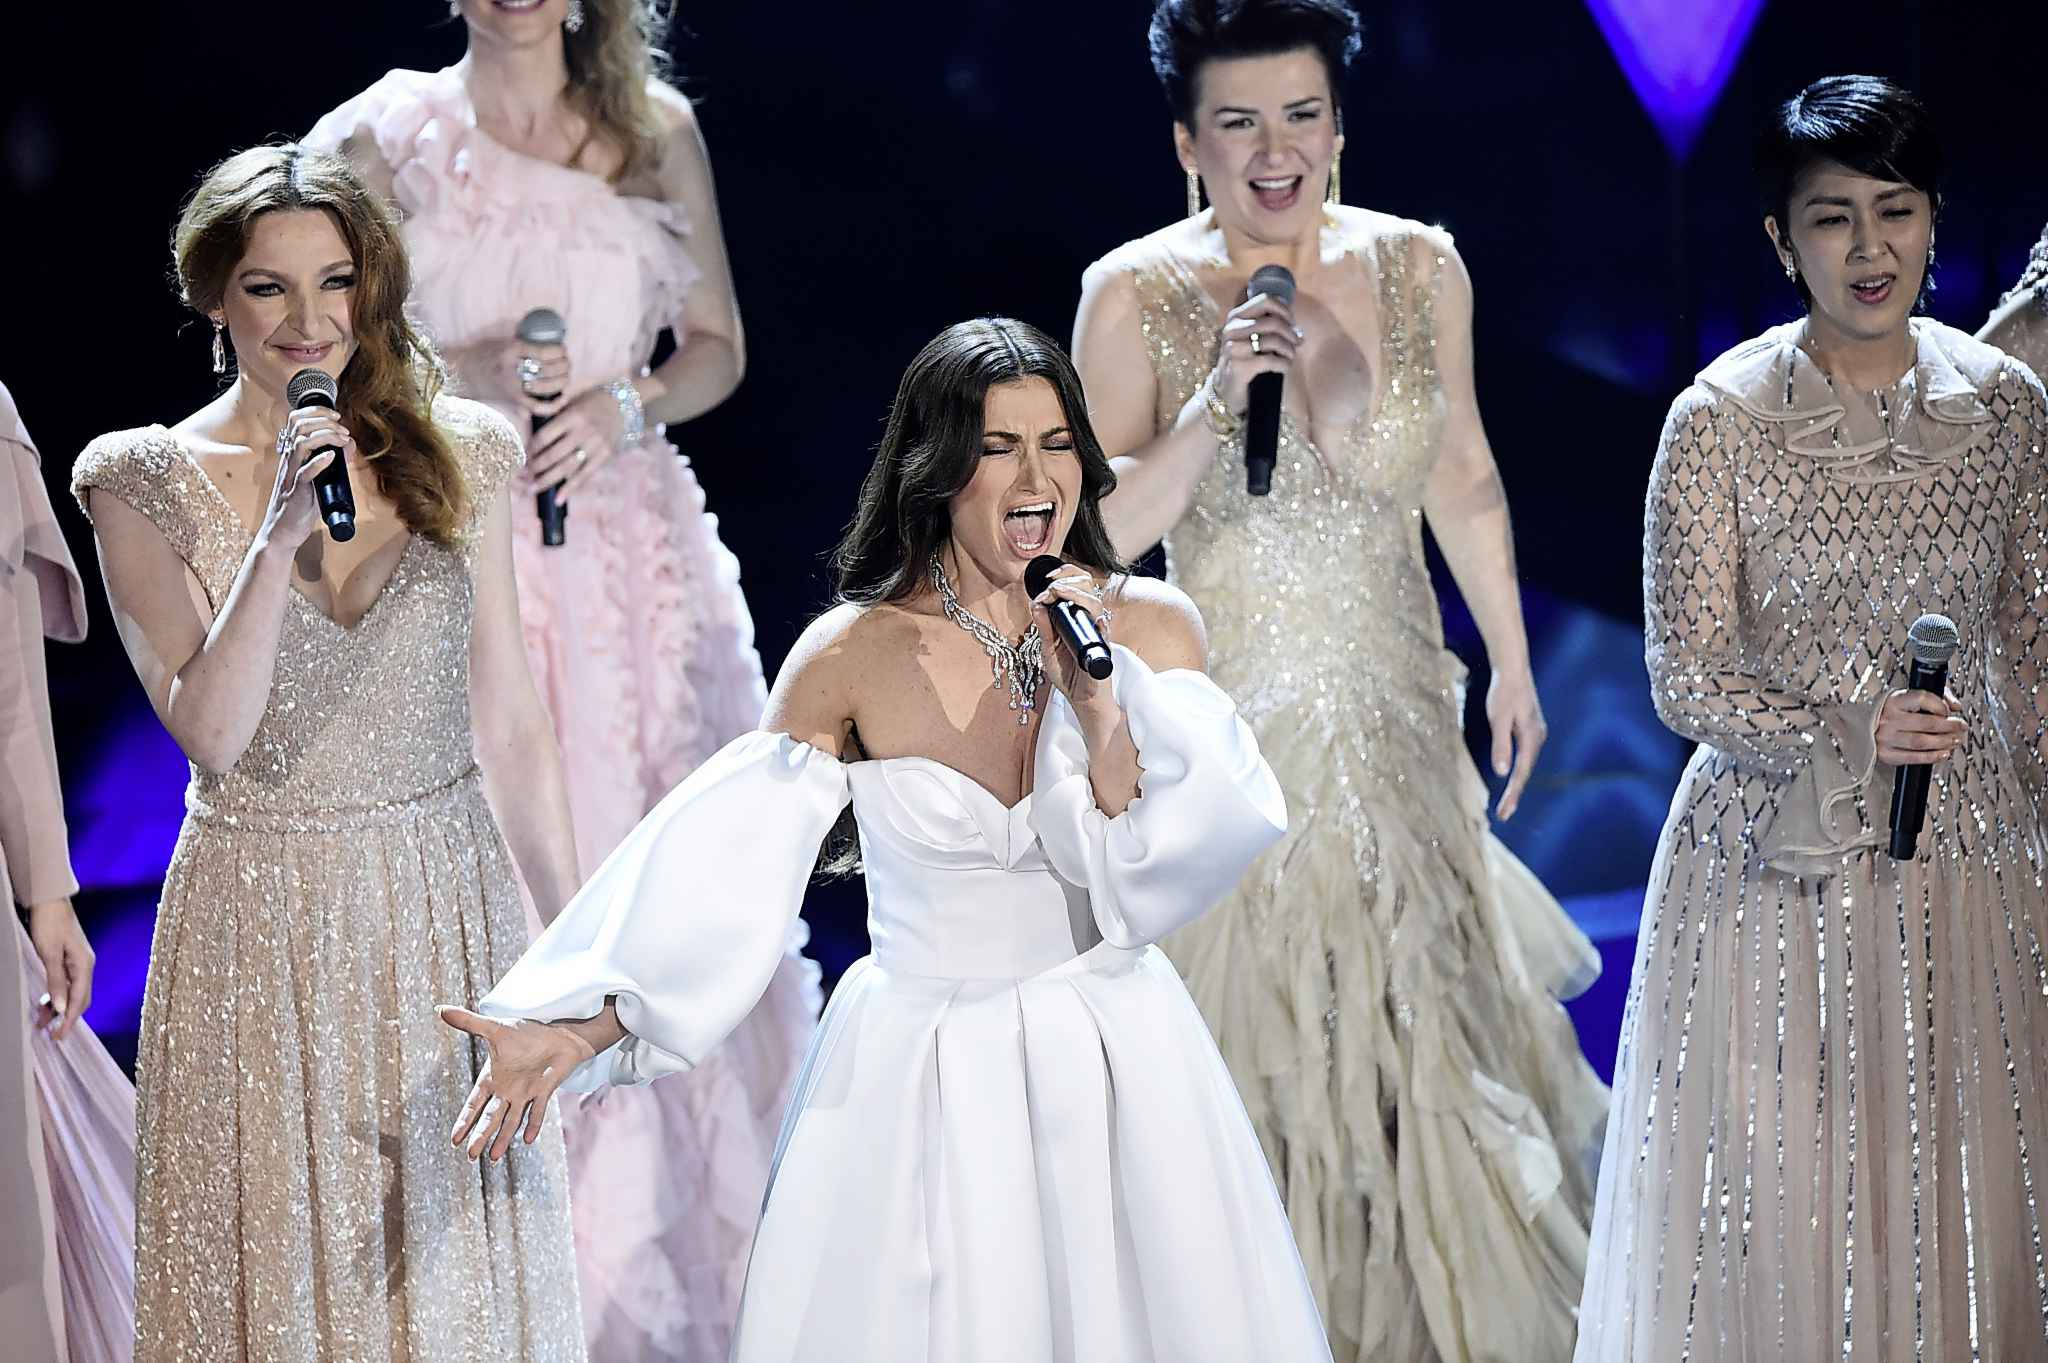 Idina Menzel (centre) performs with international voice actresses that play Elsa in the movie Frozen II at the Oscars on Sunday. (Chris Pizzello / The Associated Press)